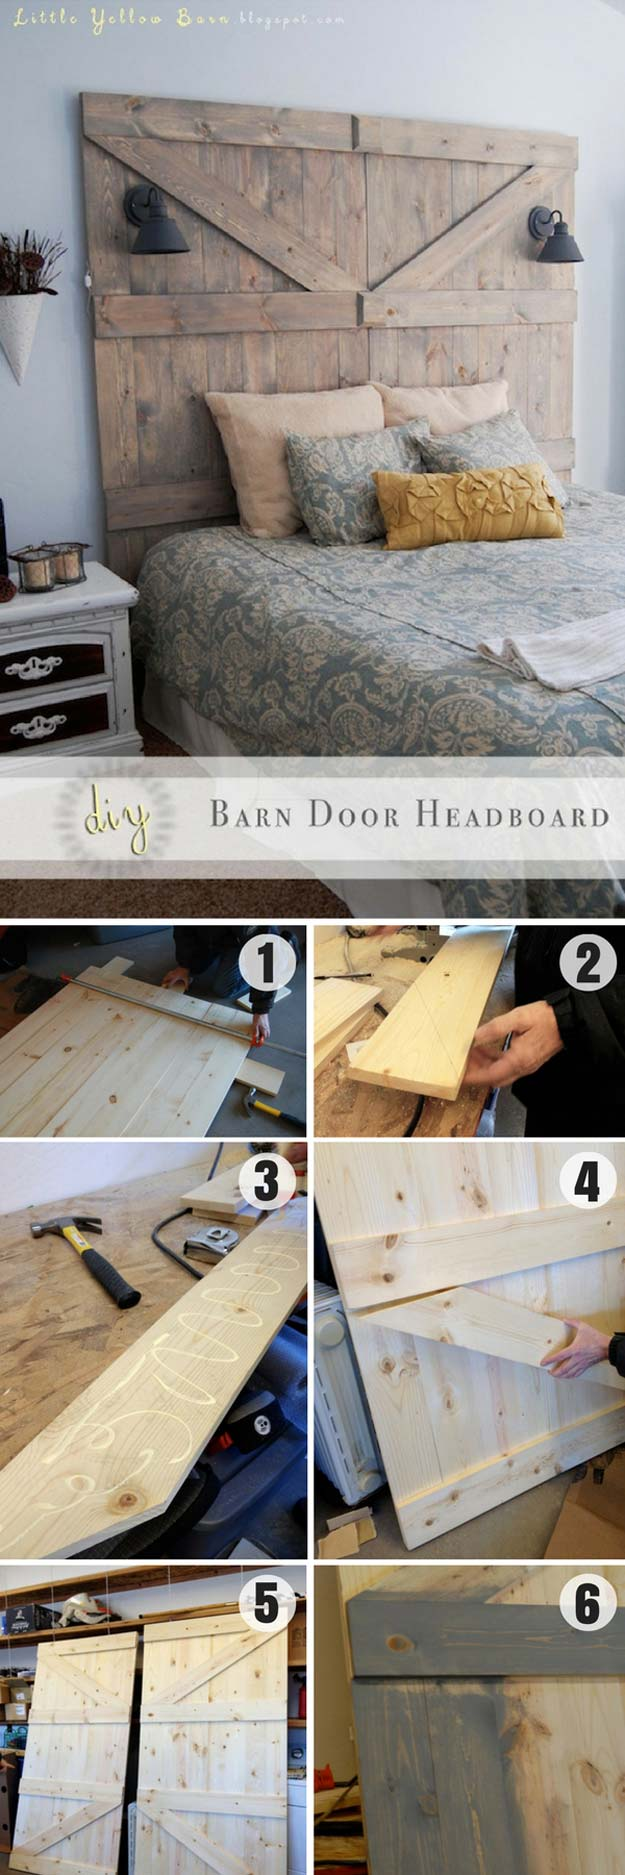 Cool DIY Ideas for Your Bed - DIY Barn Door Headboard - Fun Bedding, Pillows, Blankets, Home Decor and Crafts to Make Your Bedroom Awesome - Easy Step by Step Tutorials for Making A T-Shirt Pillow, Knit Throws, Fuzzy and Furry Warm Blankets and Handmade DYI Bedding, Sheets, Bedskirts and Shams http://diyprojectsforteens.com/diy-projects-bedding-teens